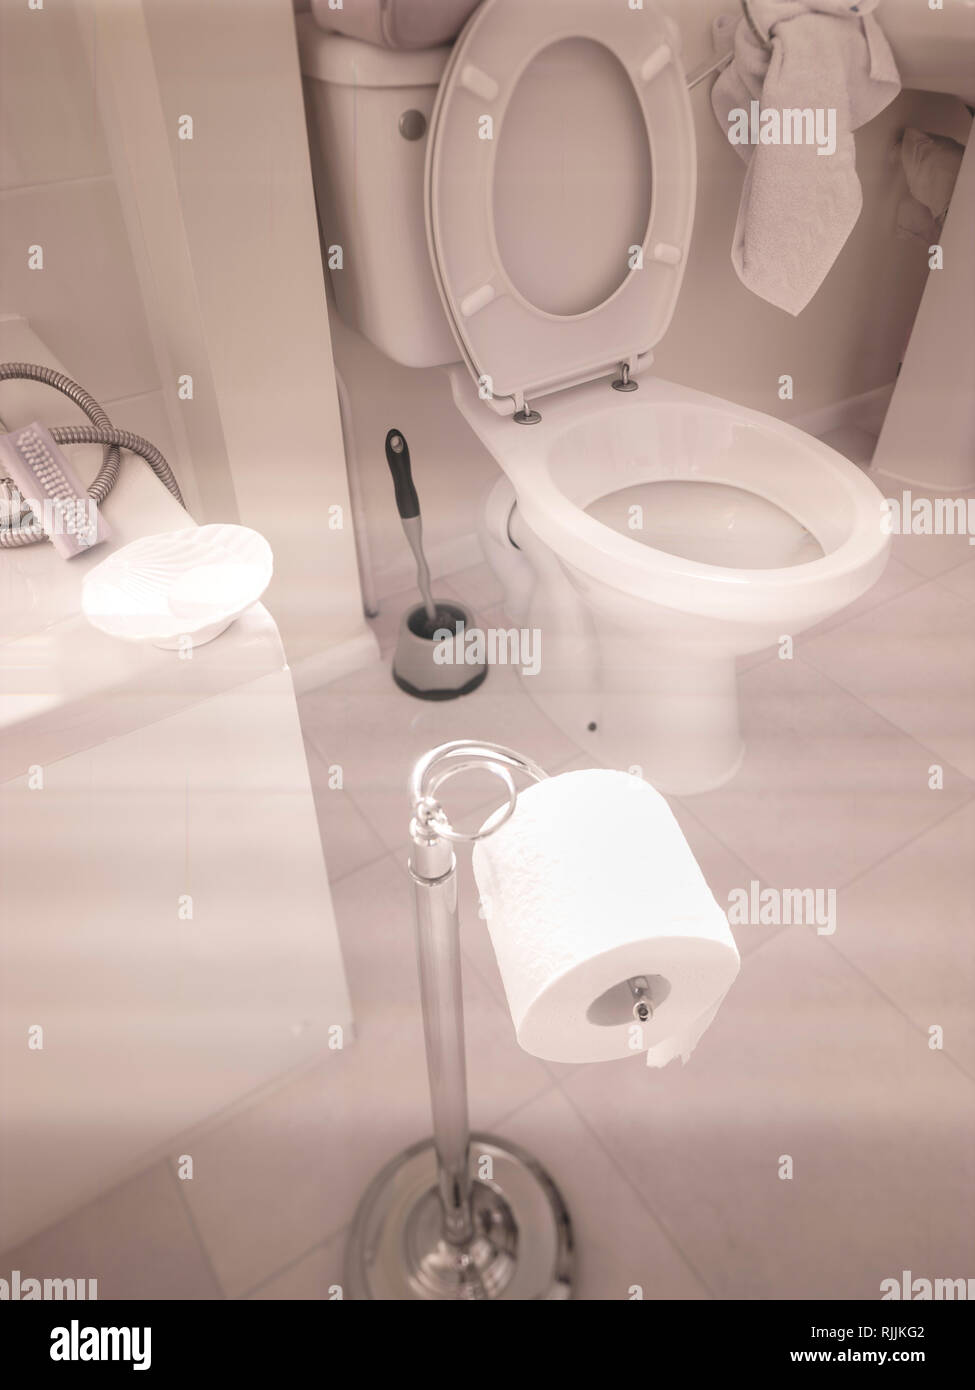 Toilet roll on roll holder in pale coloured bathroom - Stock Image